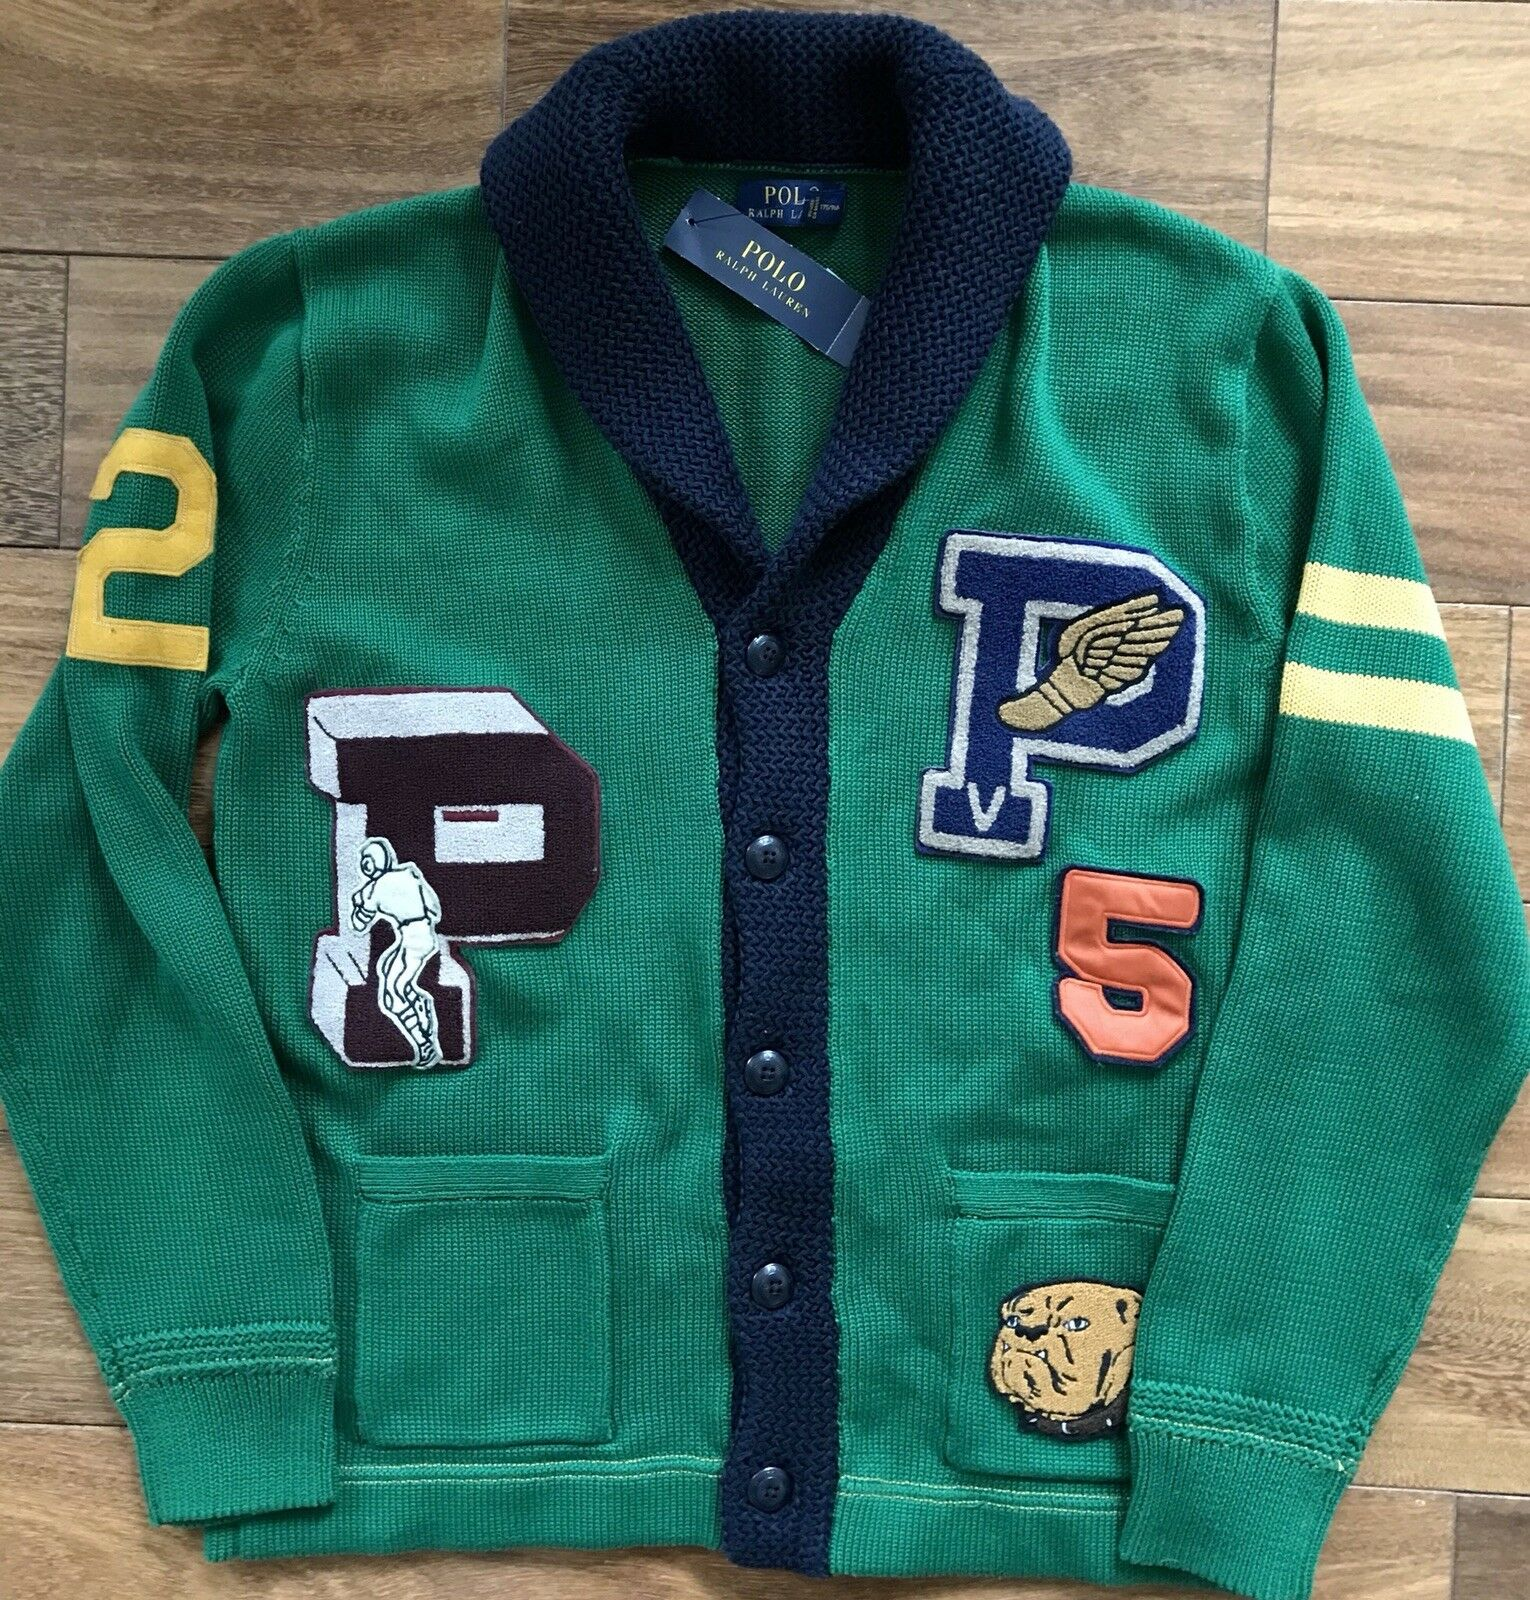 6d5ac152 POLO RALPH LAUREN Letterman Cardigan Sweater L. Varsity P-Wing Kelly Green  $248